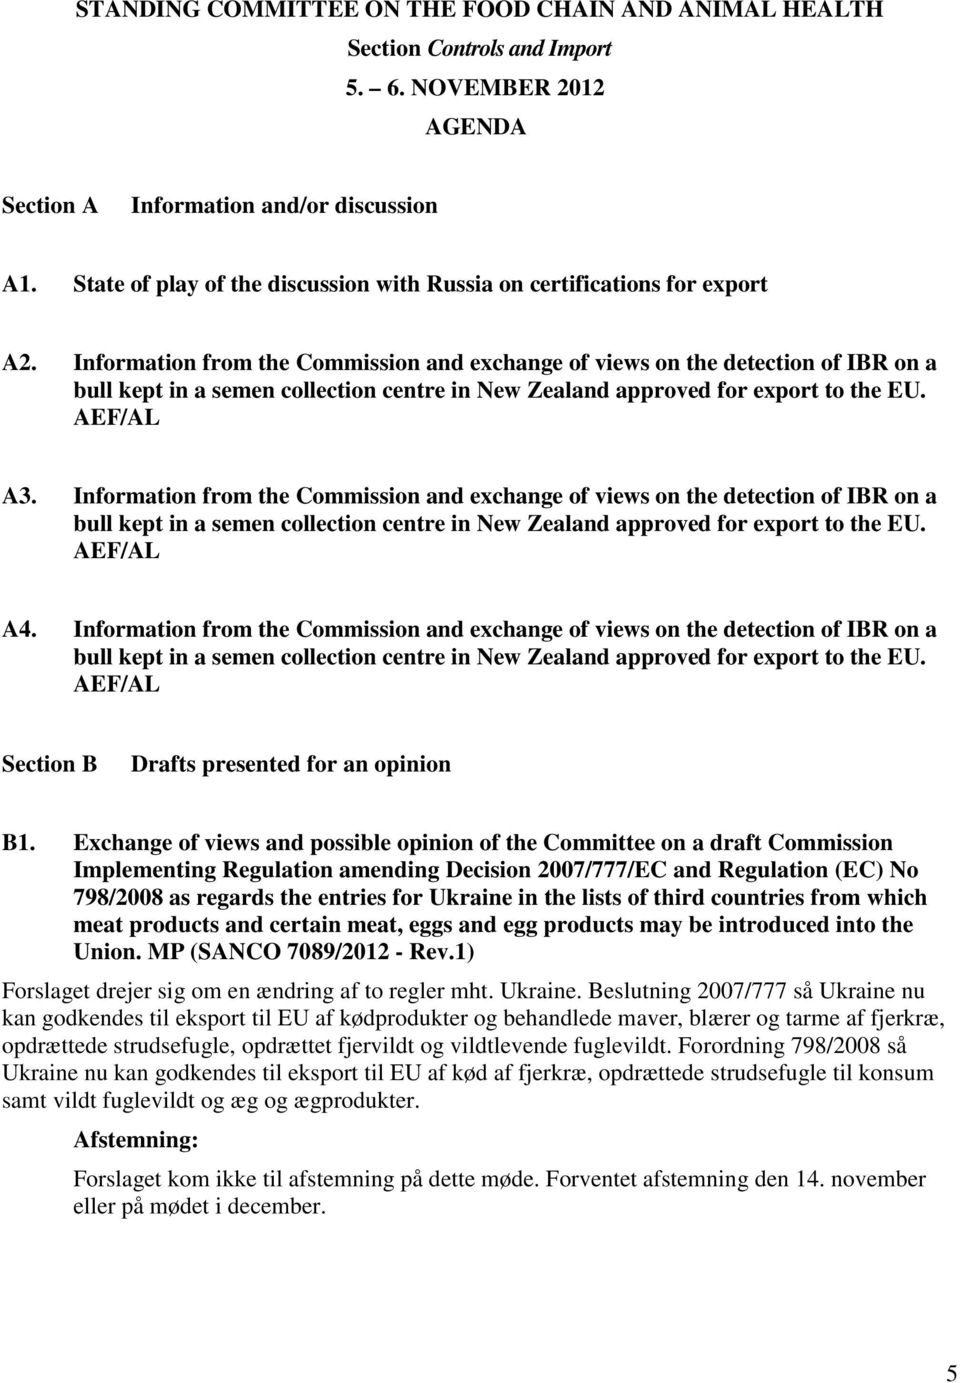 Information from the Commission and exchange of views on the detection of IBR on a bull kept in a semen collection centre in New Zealand approved for export to the EU. AEF/AL A3.